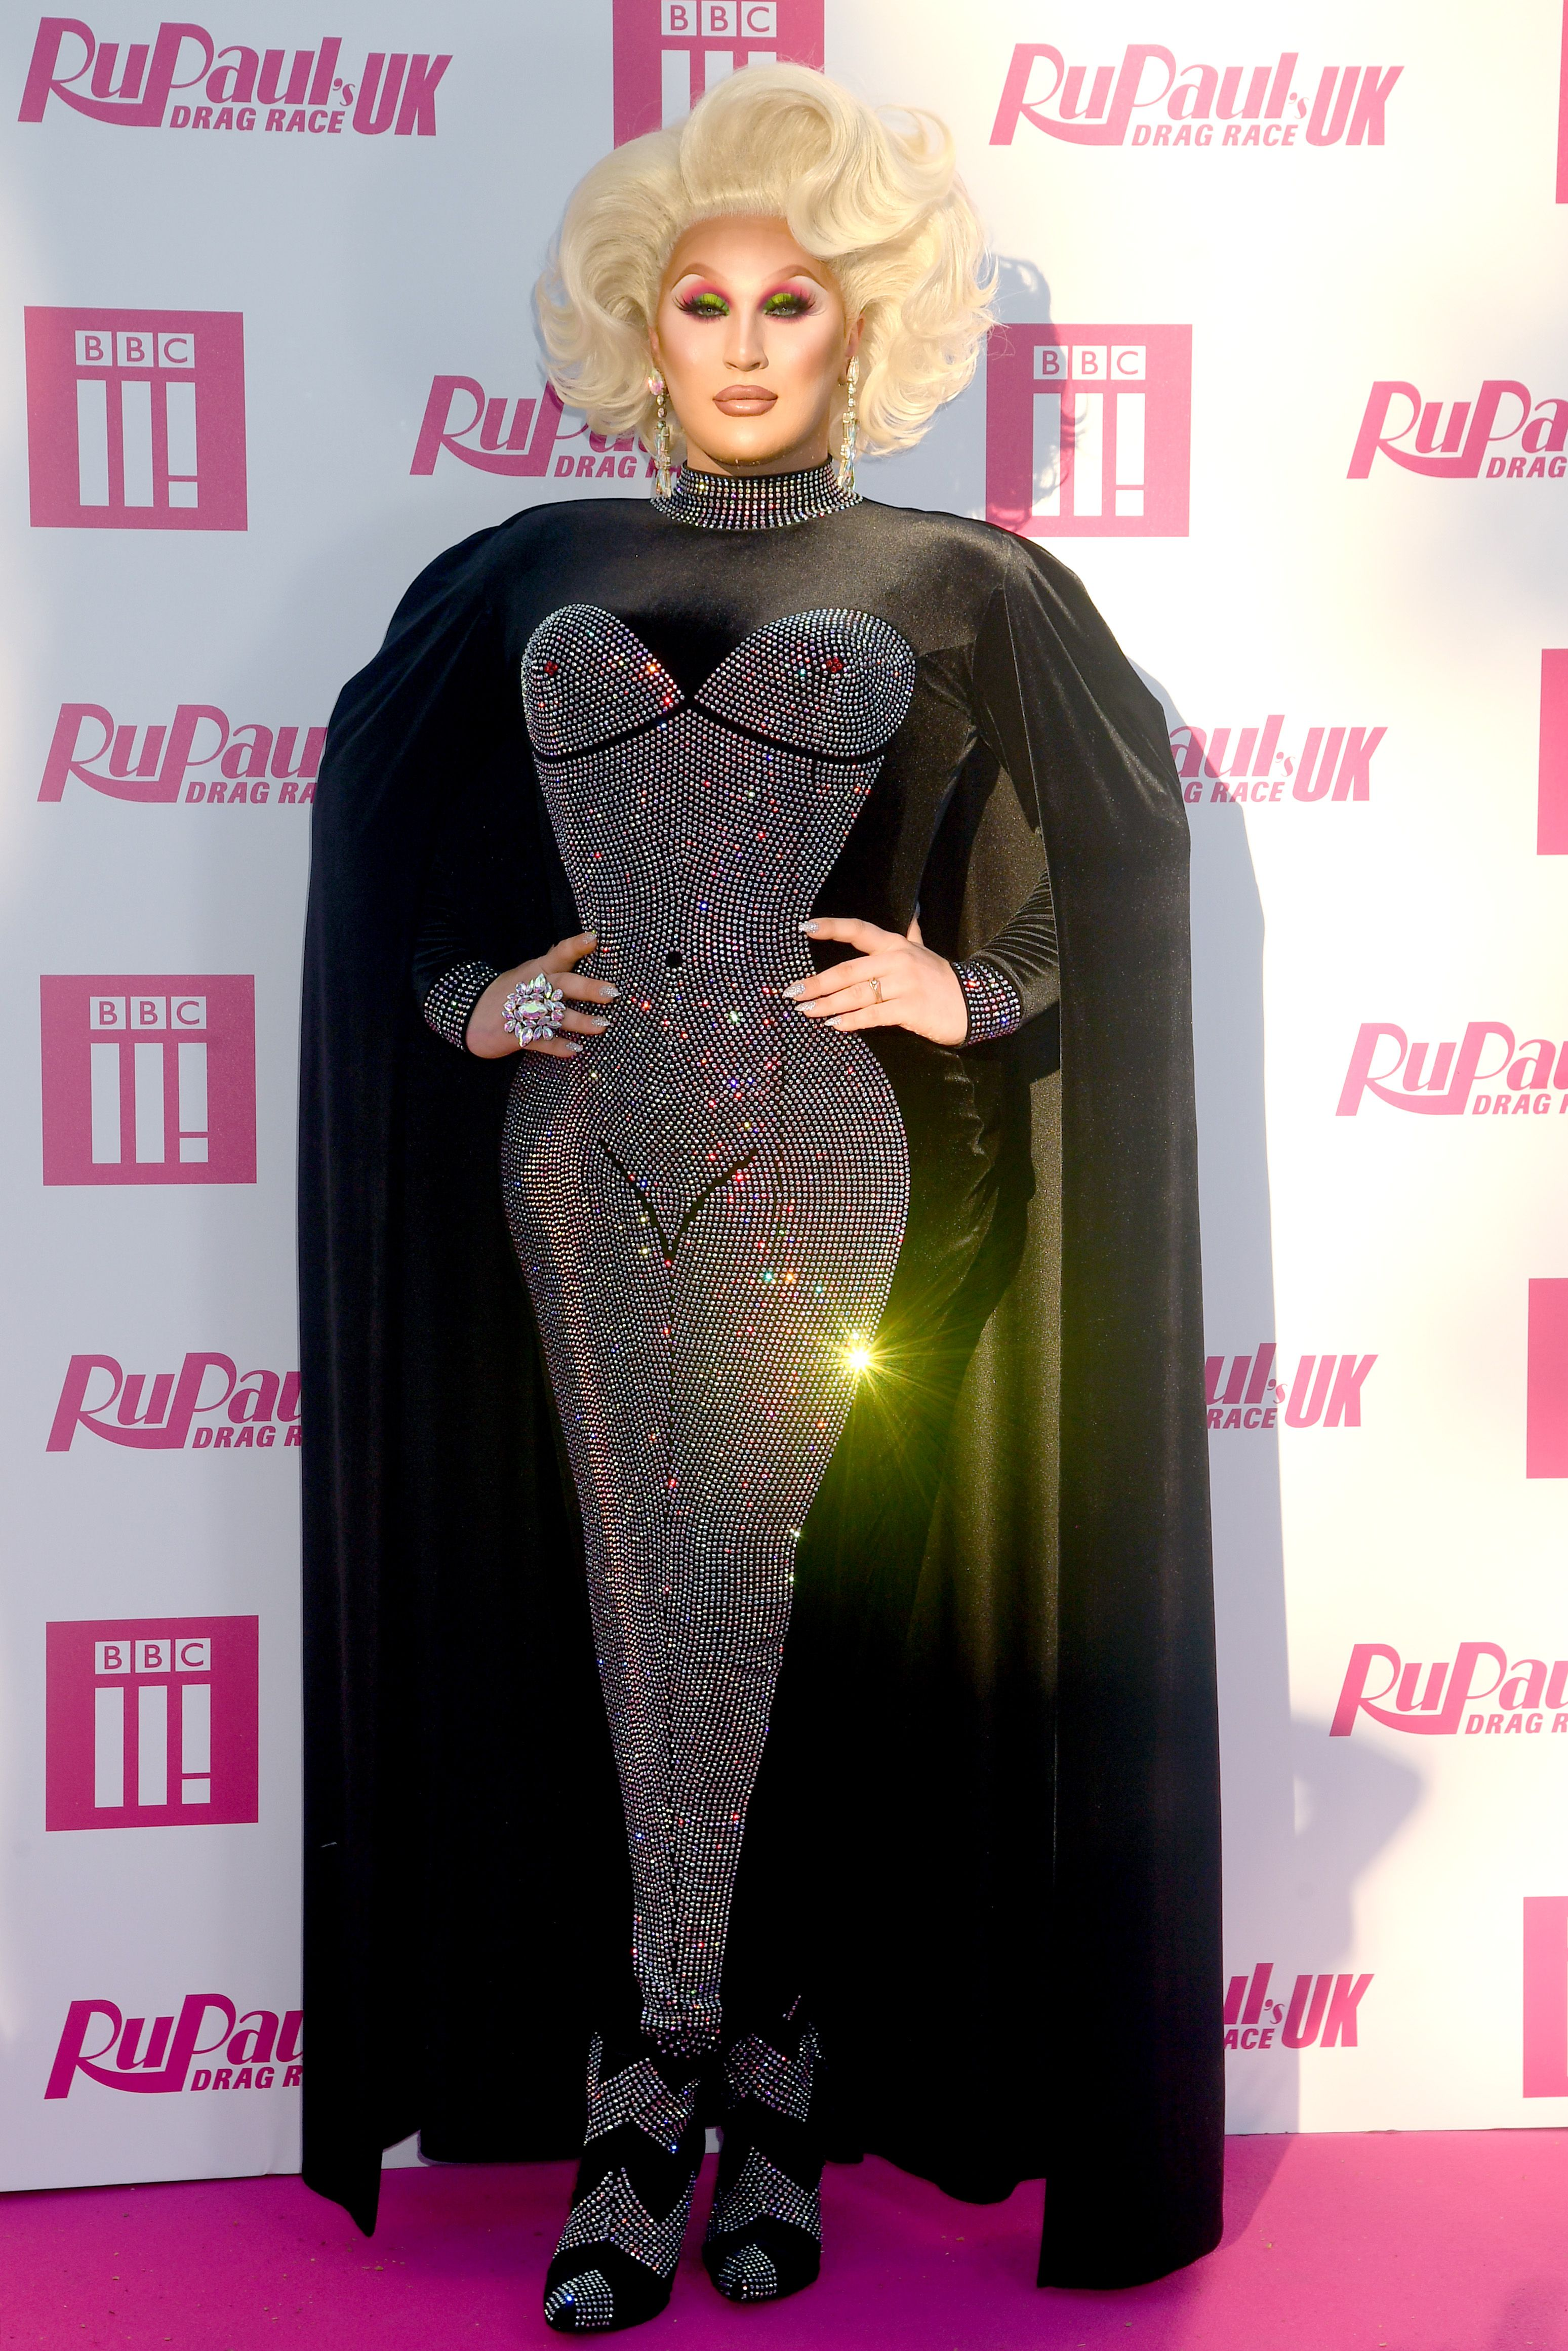 RuPaul's Drag Race UK star The Vivienne is happy with her 'villain' edit